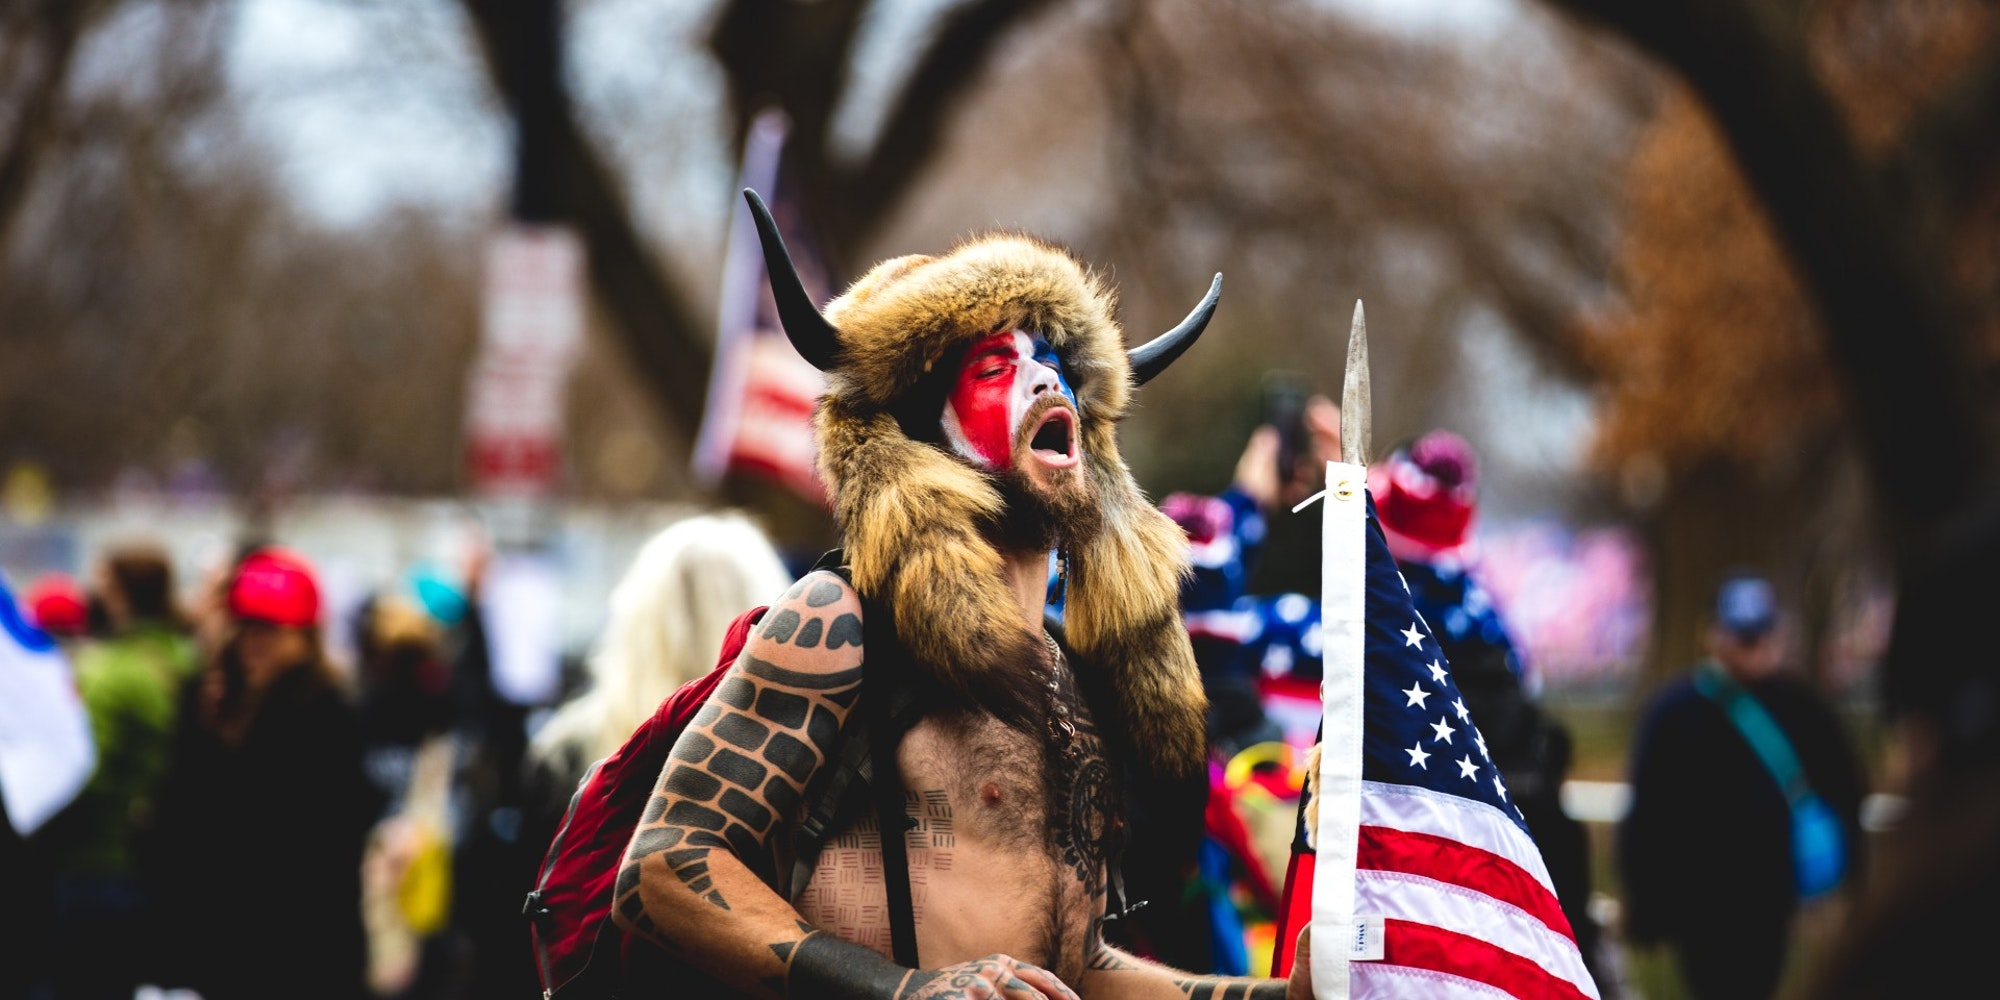 Jake Angeli, aka 'Q Shaman', at the Capitol riot on Wednesday